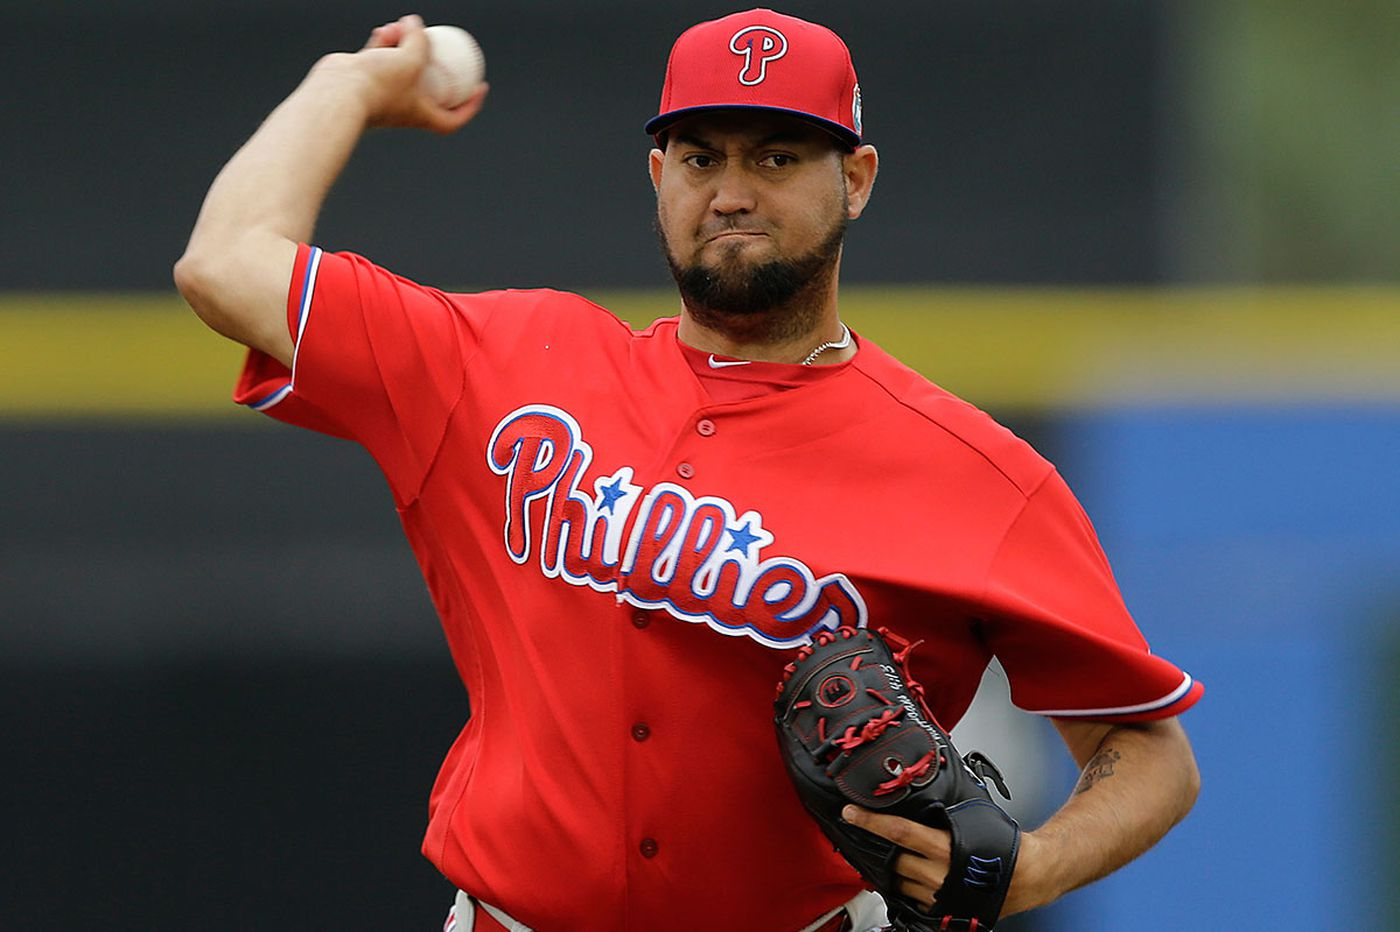 Phillies face decision on reliever Mujica